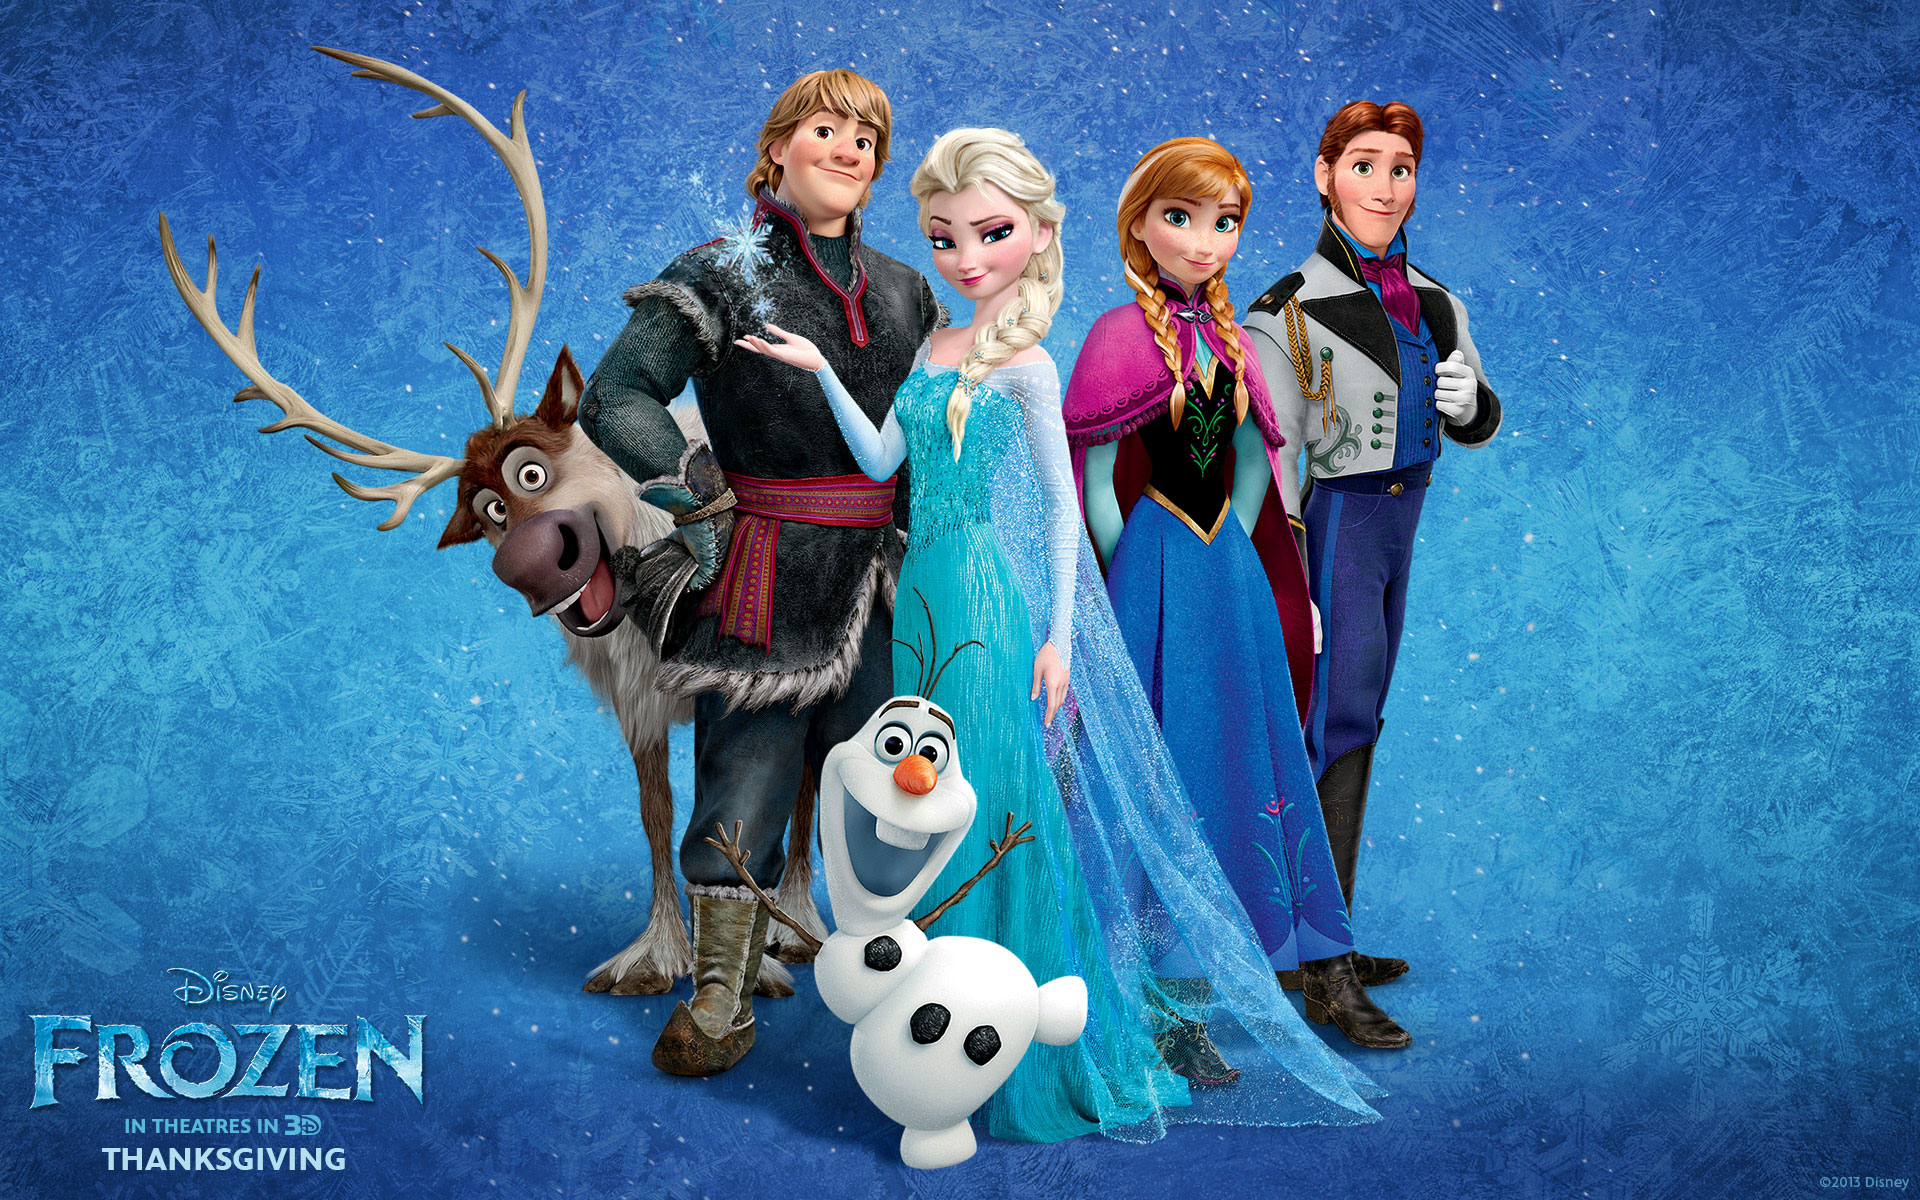 hd wallpaper frozen - photo #15